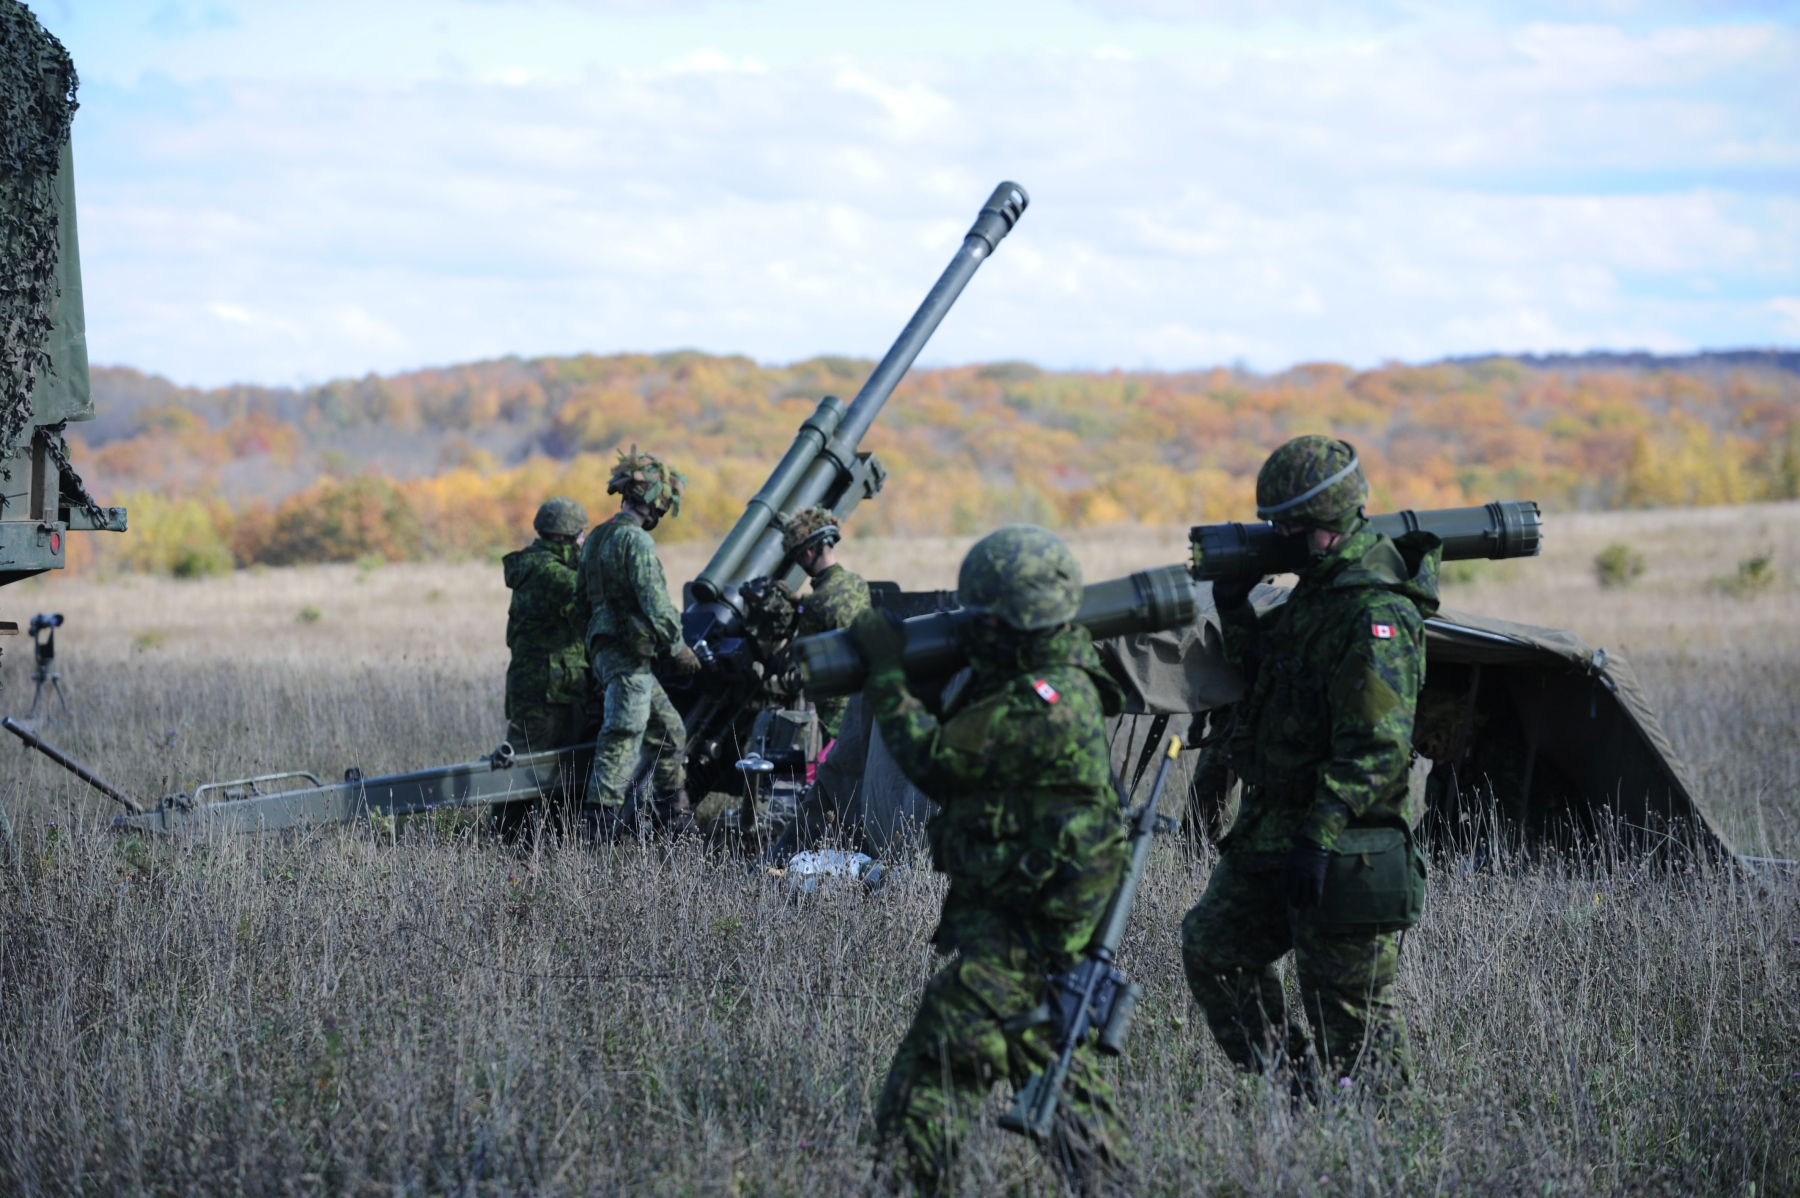 Members of the Canadian Army Reserve and Royal Canadian Air Force  participated in Exercise AUTUMN GUNNER on October 17, 2020 at 4th Canadian Division Training Centre in Meaford, Ontario. Imagery: Lt(N) Andrew McLaughlin, Public Affairs Officer, 31 Canadian Brigade Group/Department of National Defence (2020). LX07-2020-017 // Des membres de la Réserve de l'Armée canadienne et de l'Aviation royale du Canada ont participé à l'exercice AUTUMN GUNNER le 17 octobre 2020 au Centre d'entraînement de la 4e Division canadienne à Meaford, en Ontario. Photos : Ltv Andrew McLaughlin, officier des affaires publiques, 31 Groupe-brigade du Canada/ministère de la Défense nationale (2020). LX07-2020-017